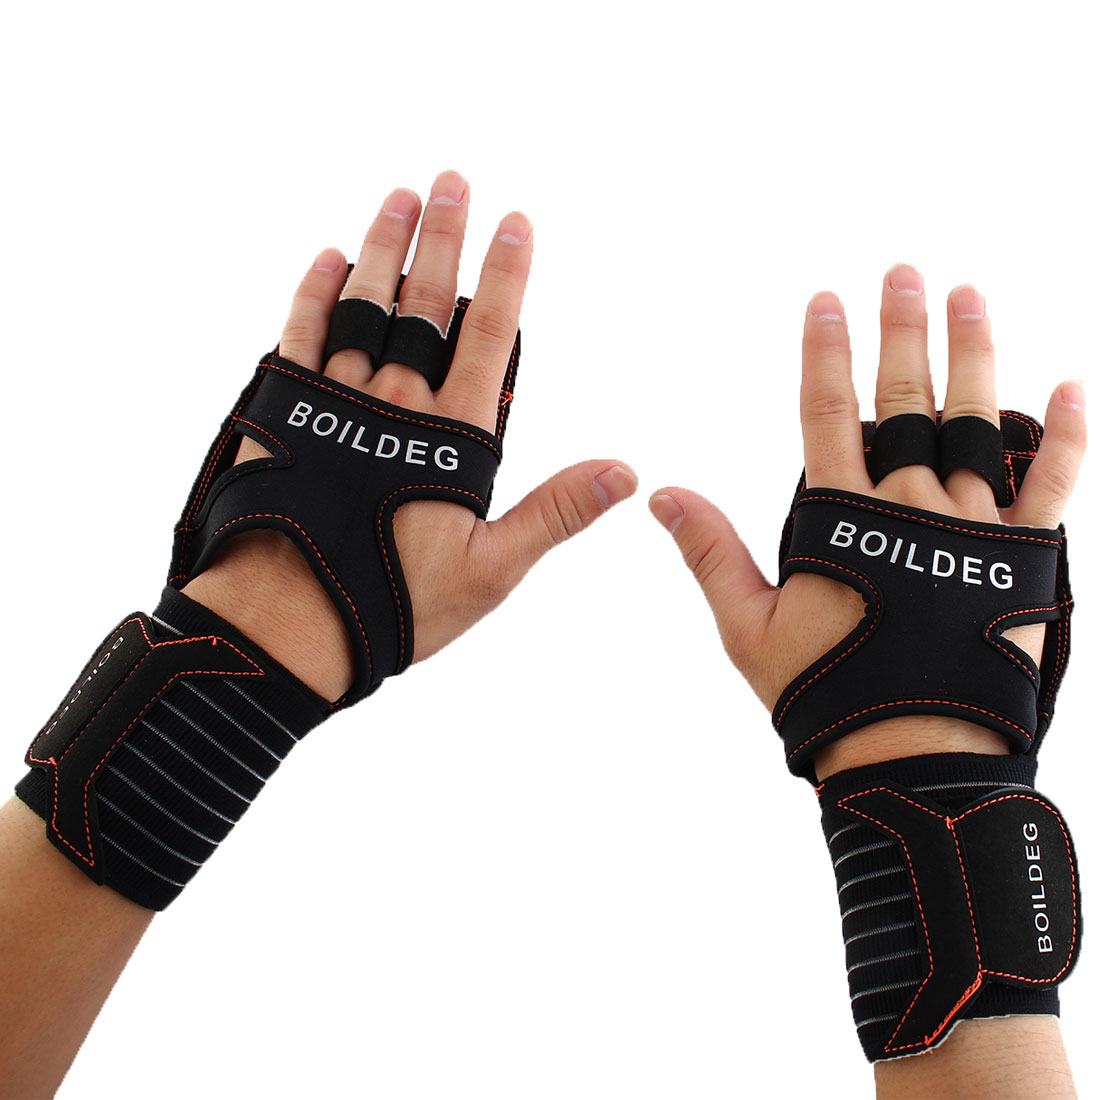 BOILDEG Authorized Unisex Sports Training Workout Mittens Wear-resisting Palm Support Fitness Gloves Orange M Pair